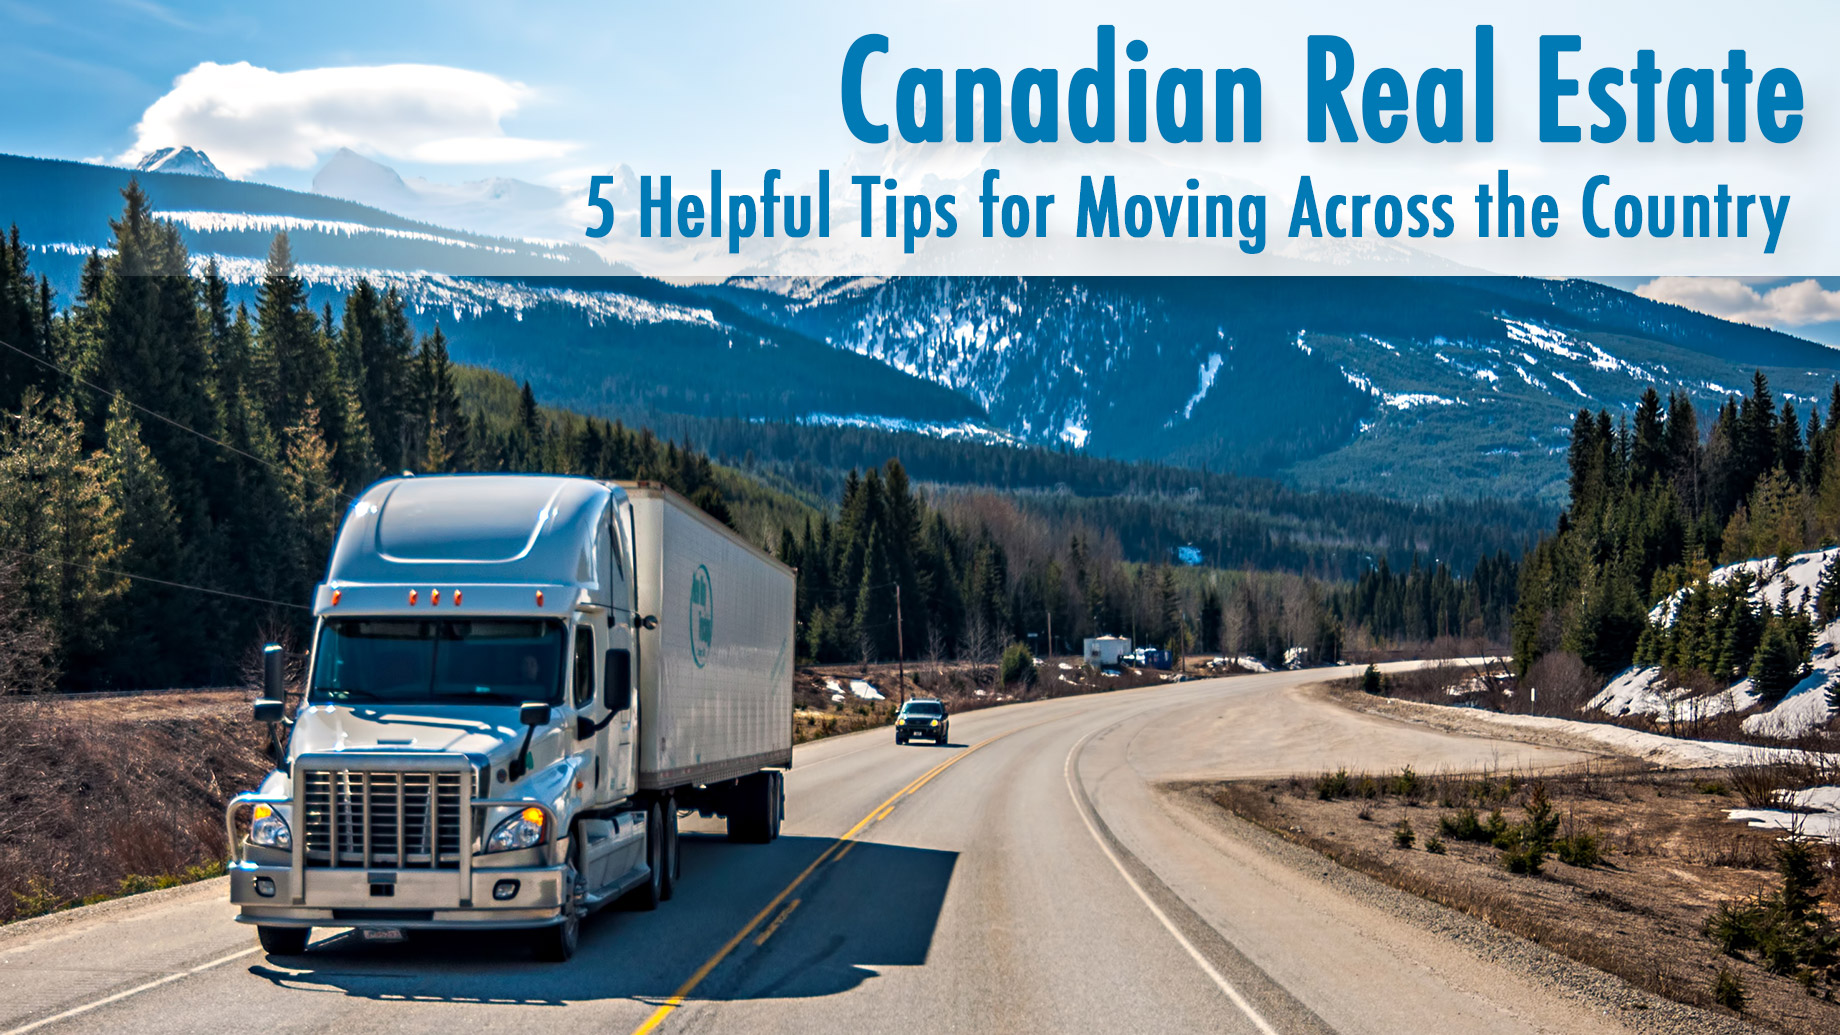 Canadian Real Estate - 5 Helpful Tips for Moving Across the Country